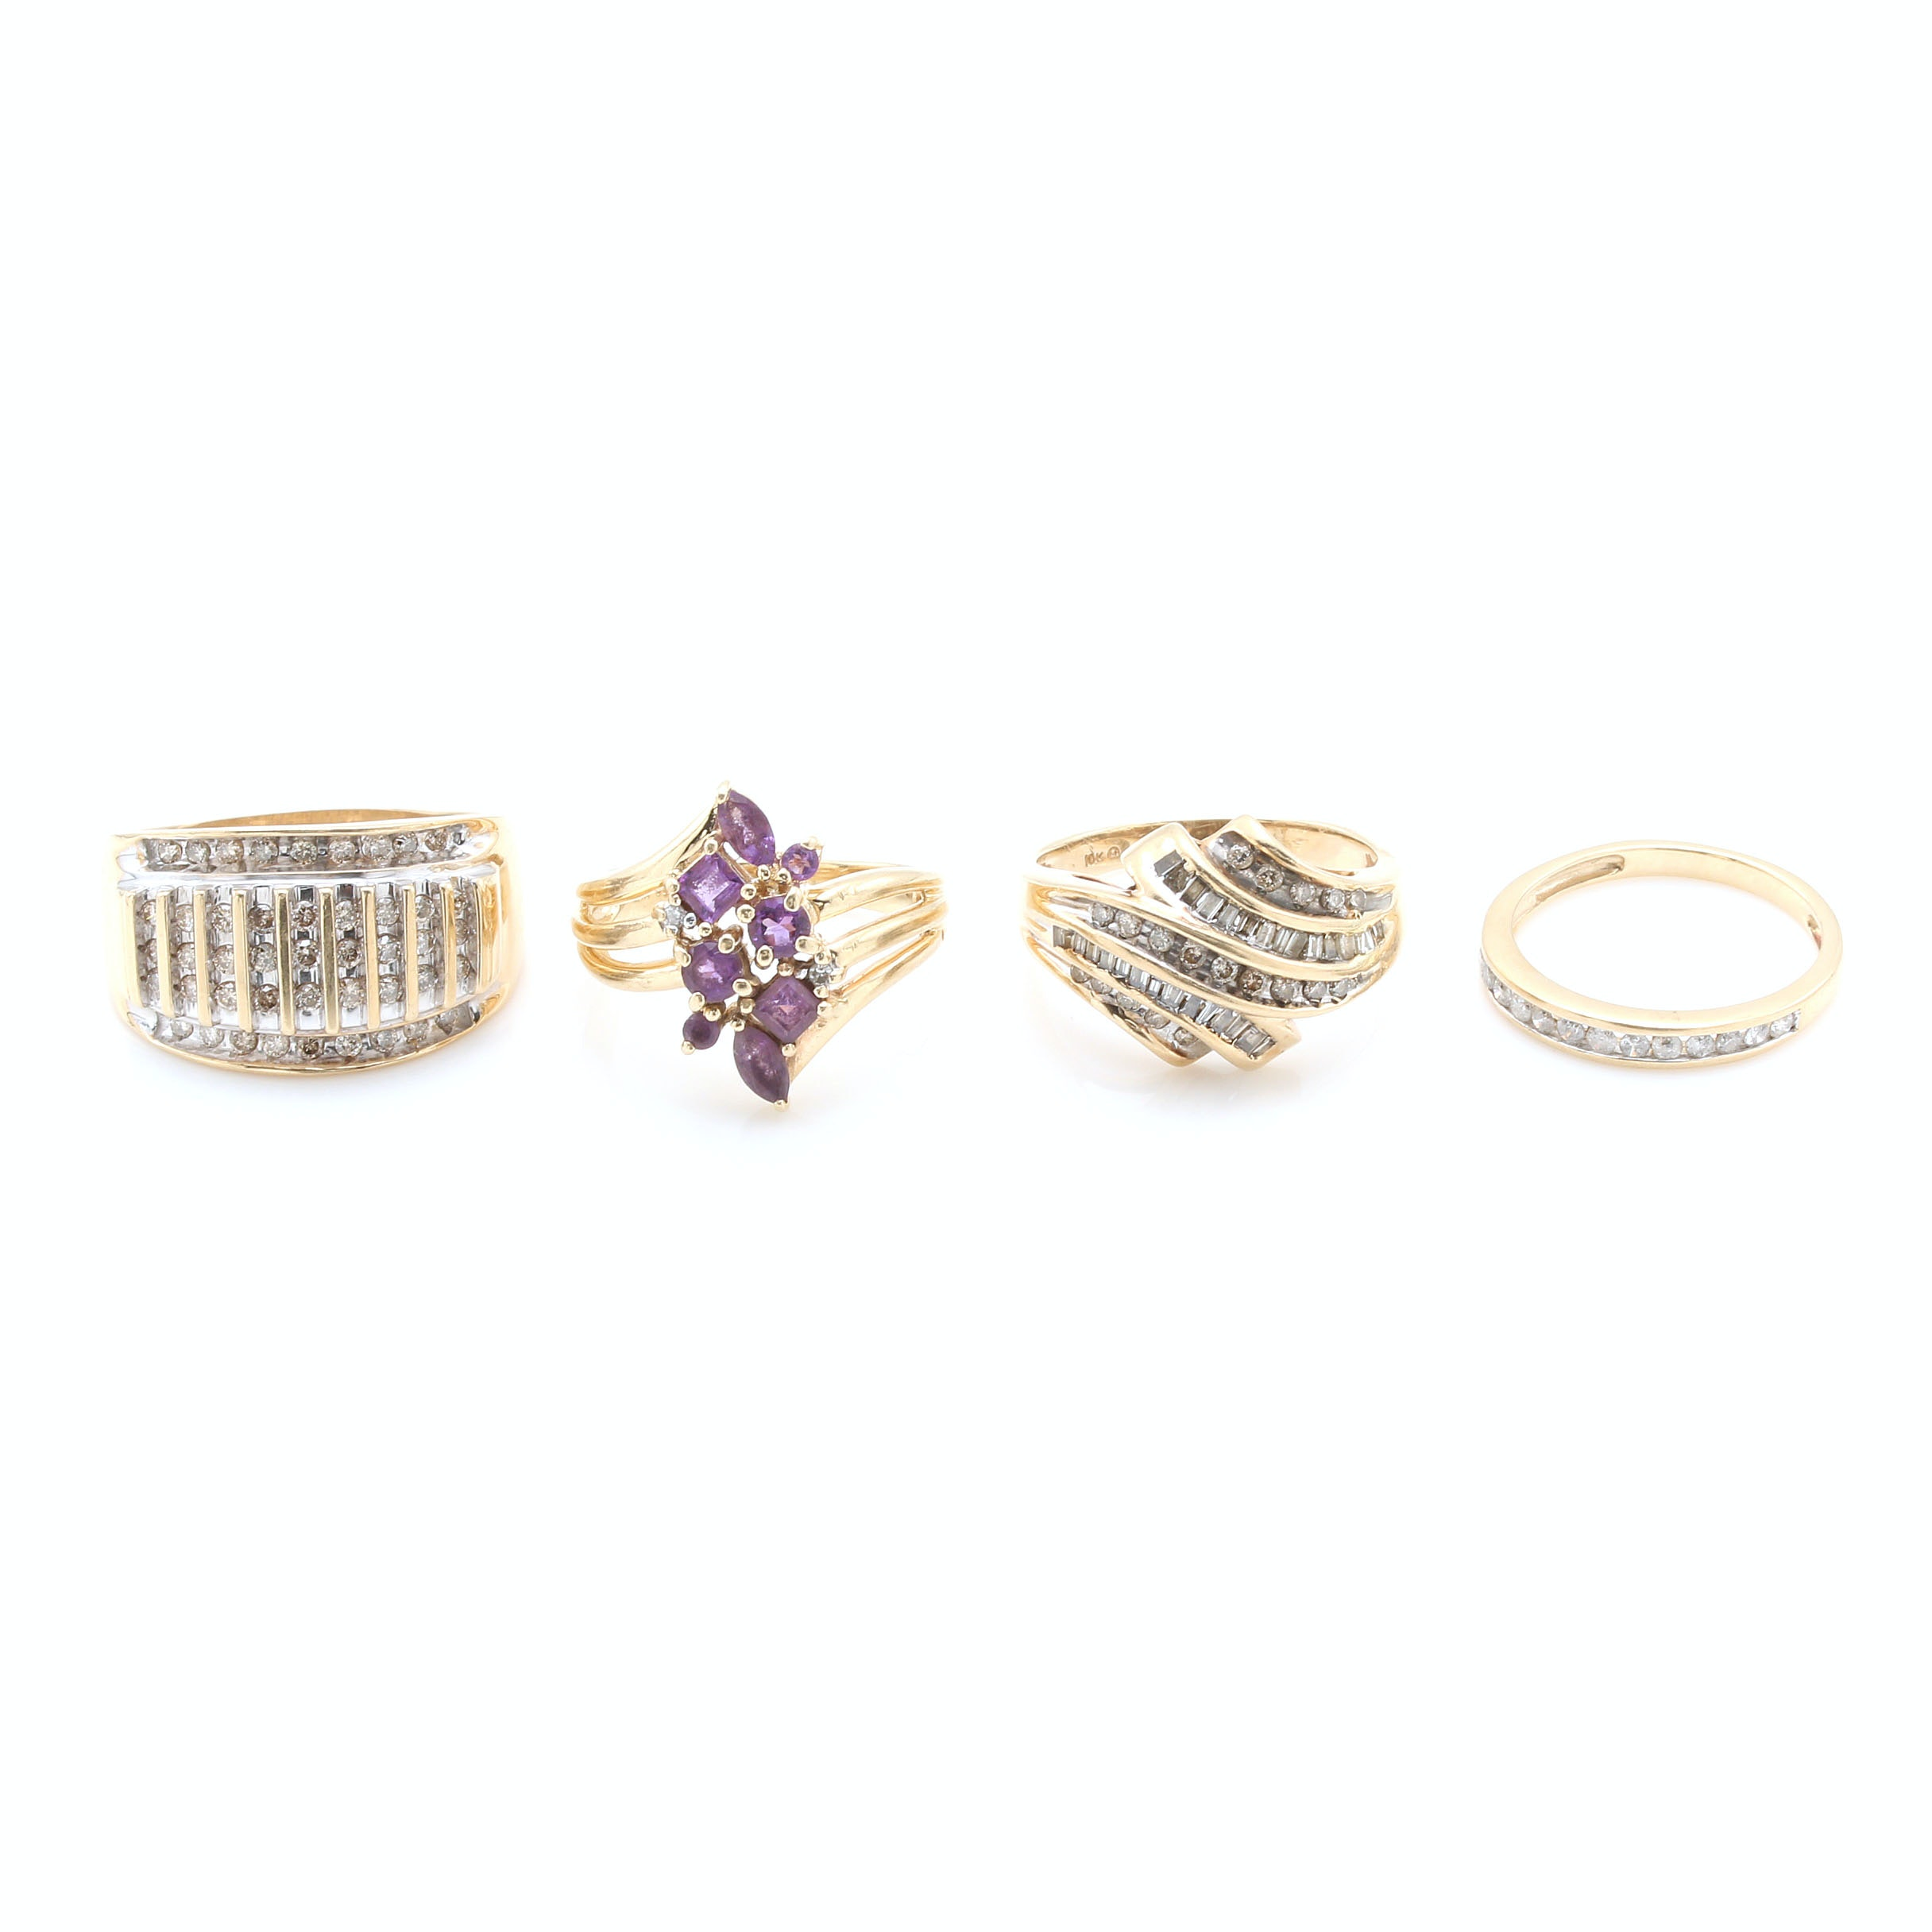 Assortment of 10K and 14K Yellow Gold Amethyst and Diamond Rings